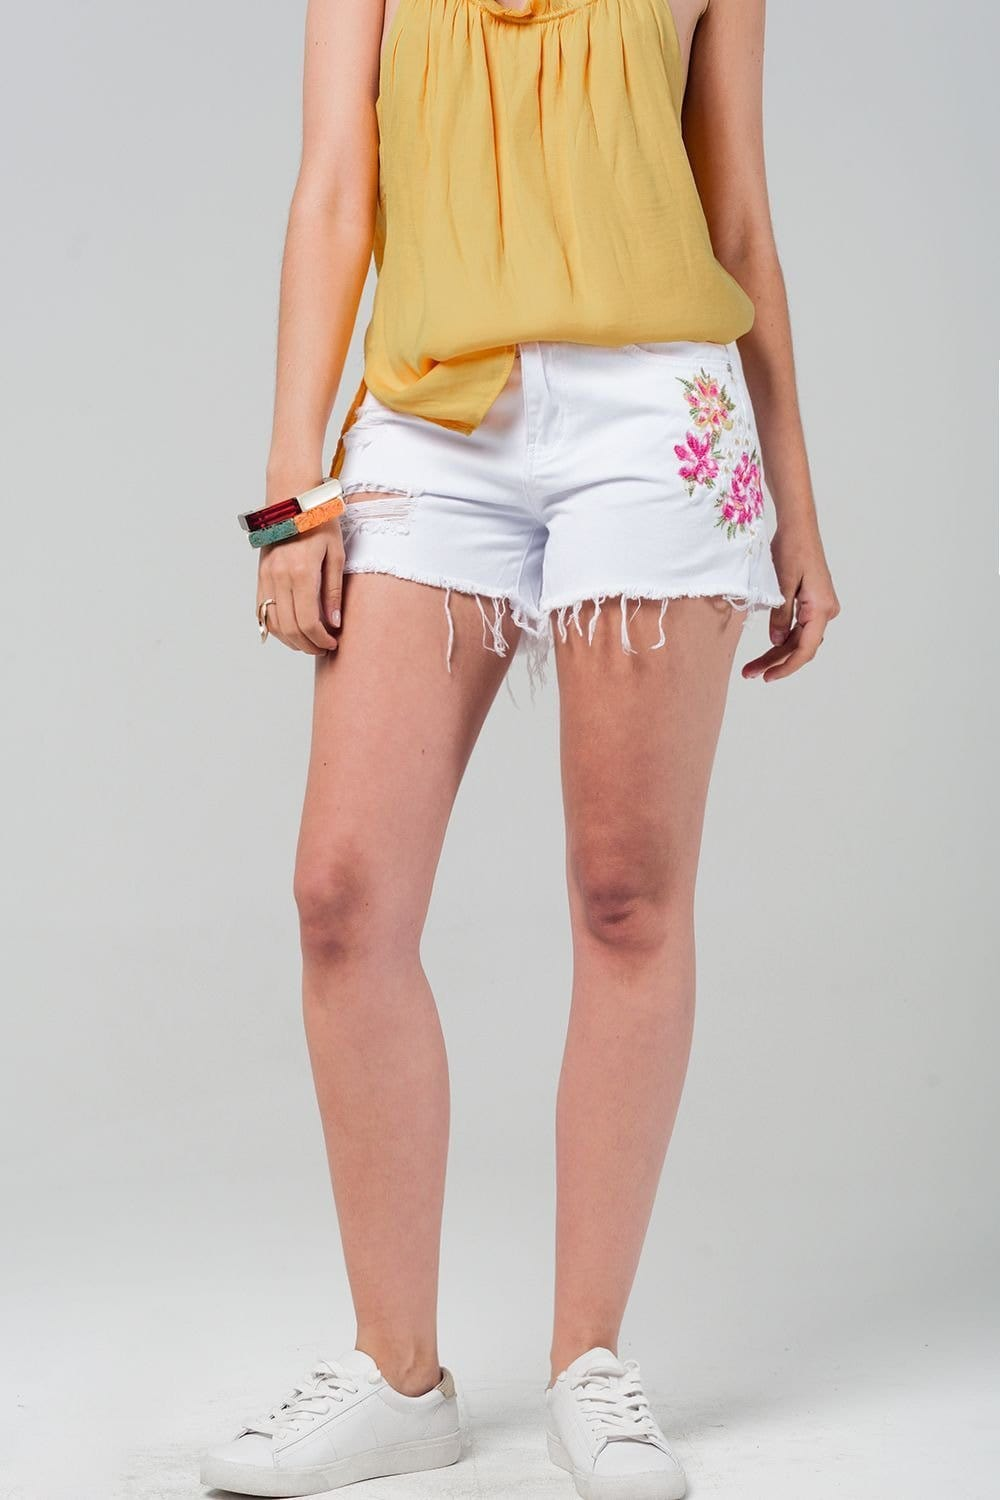 White denim shorts with embroidered flowers - Himelhoch's